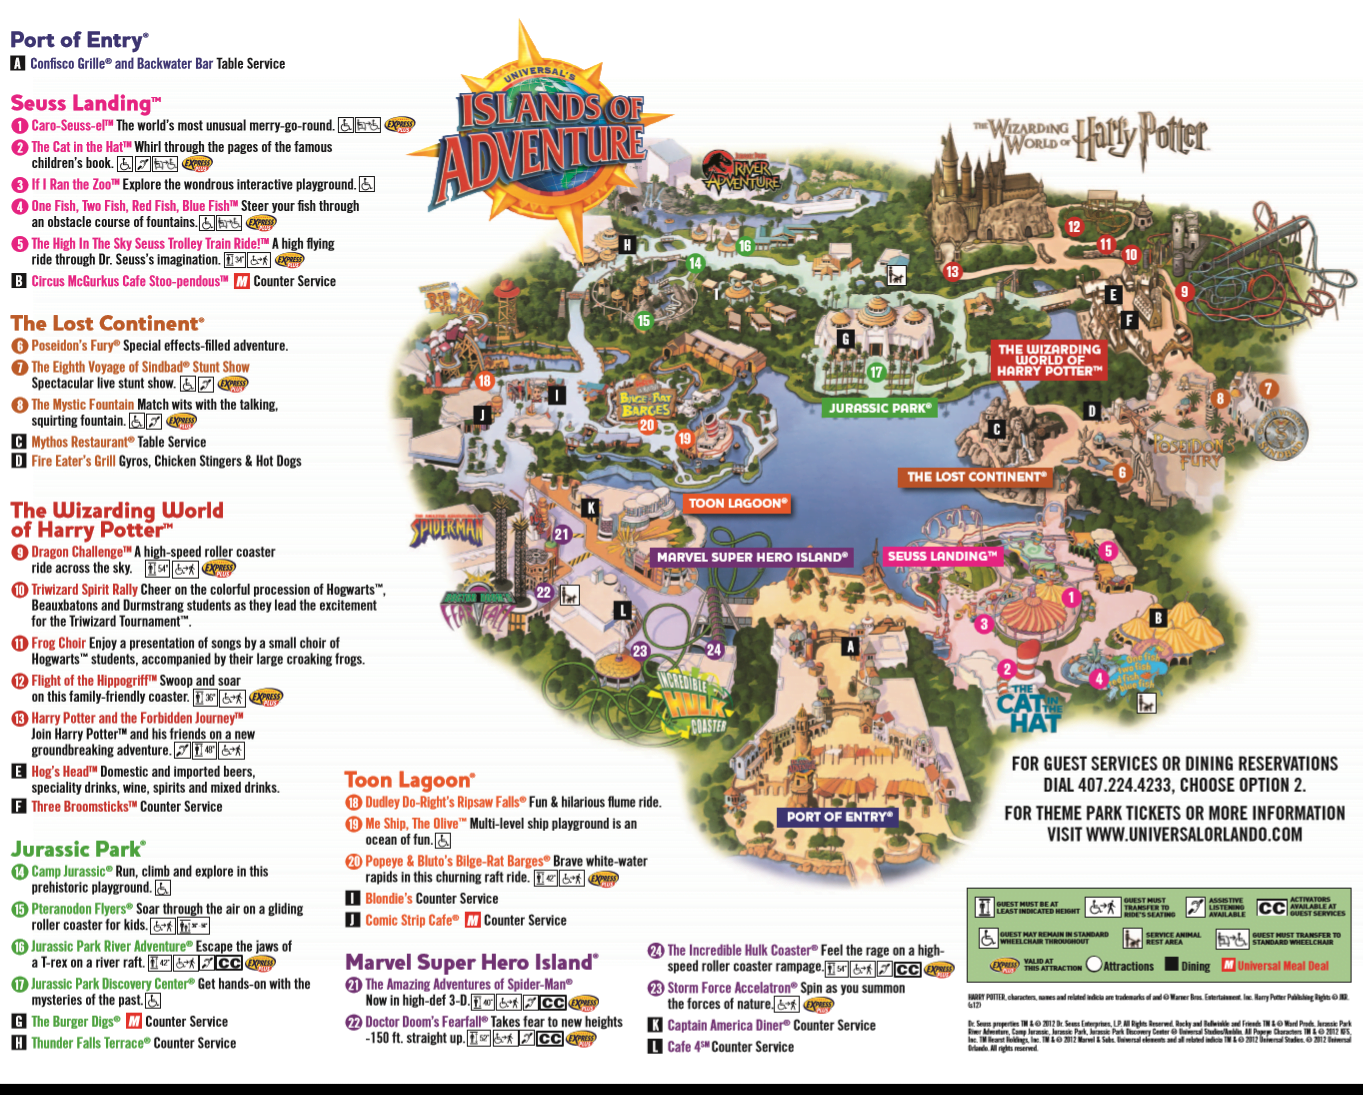 Map of Islands of Adventure